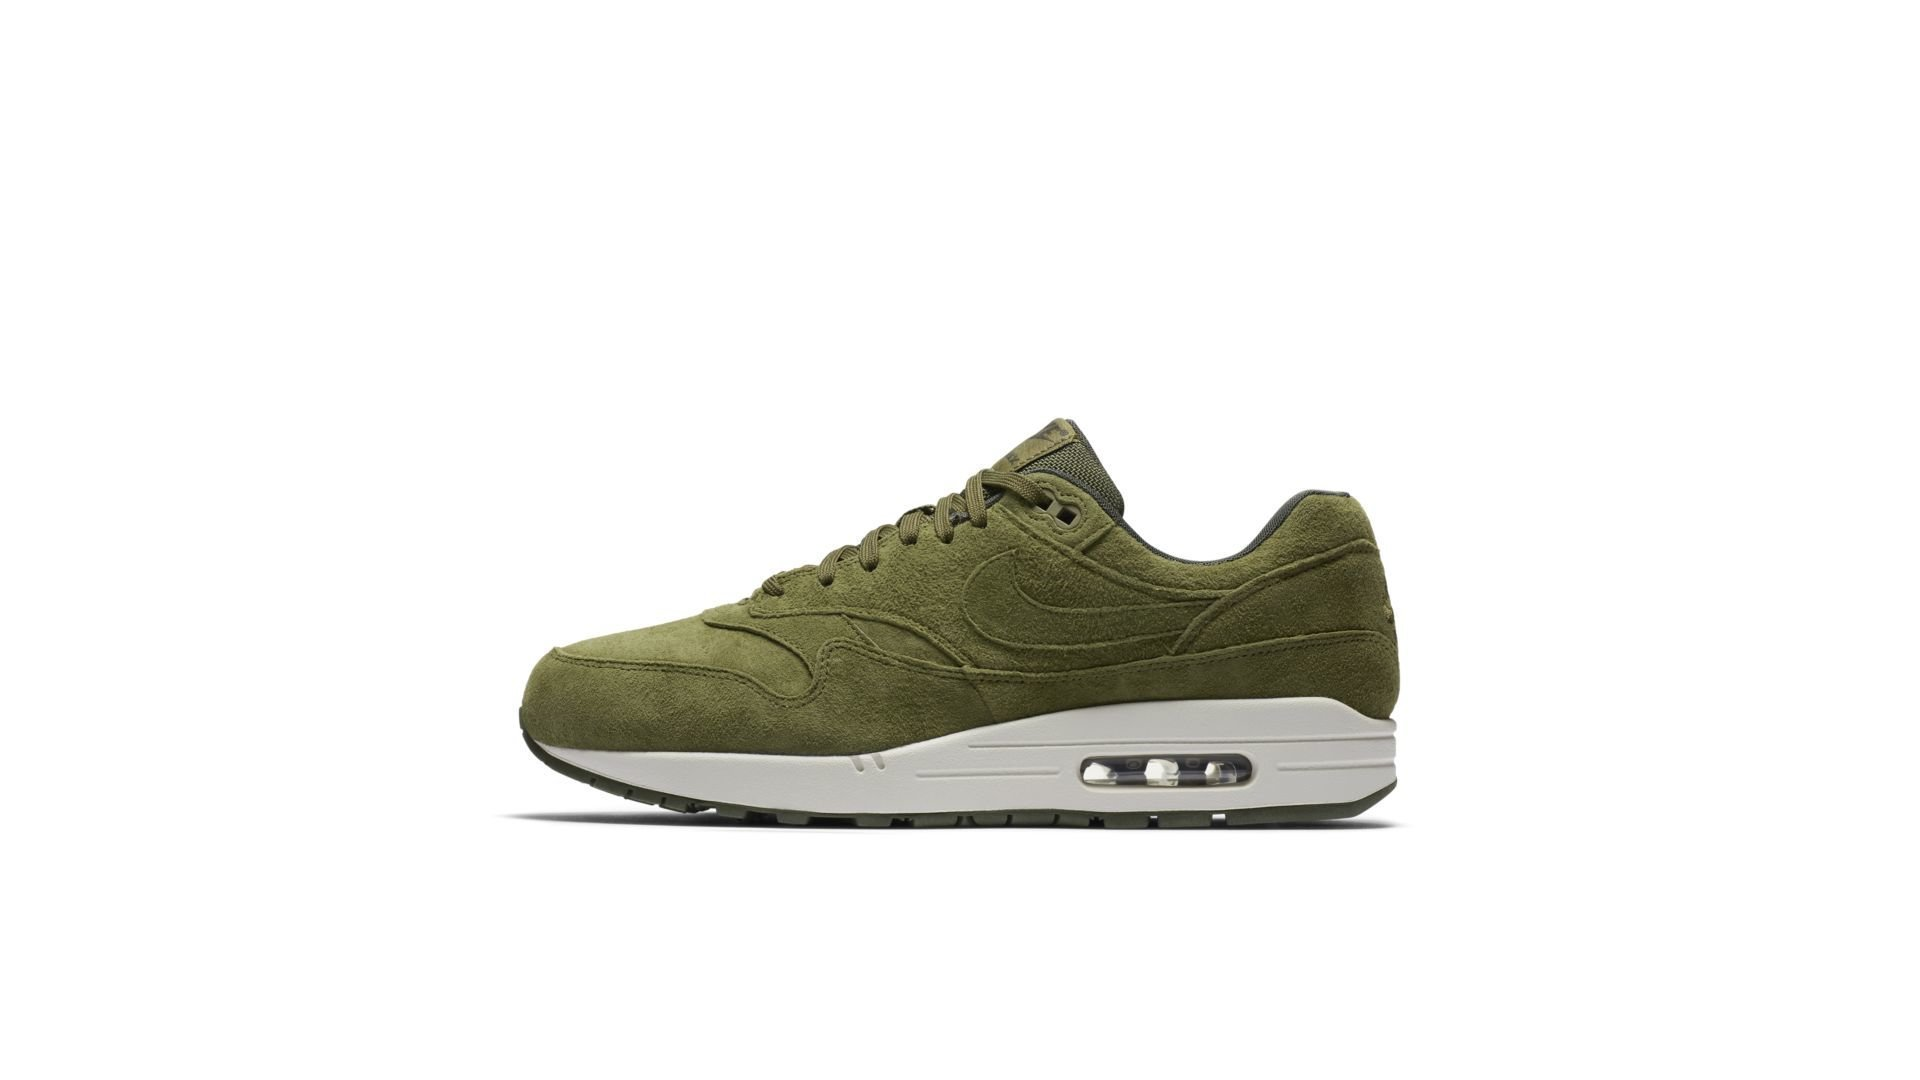 Nike Air Max 1 'Green Suède' (875844-301)